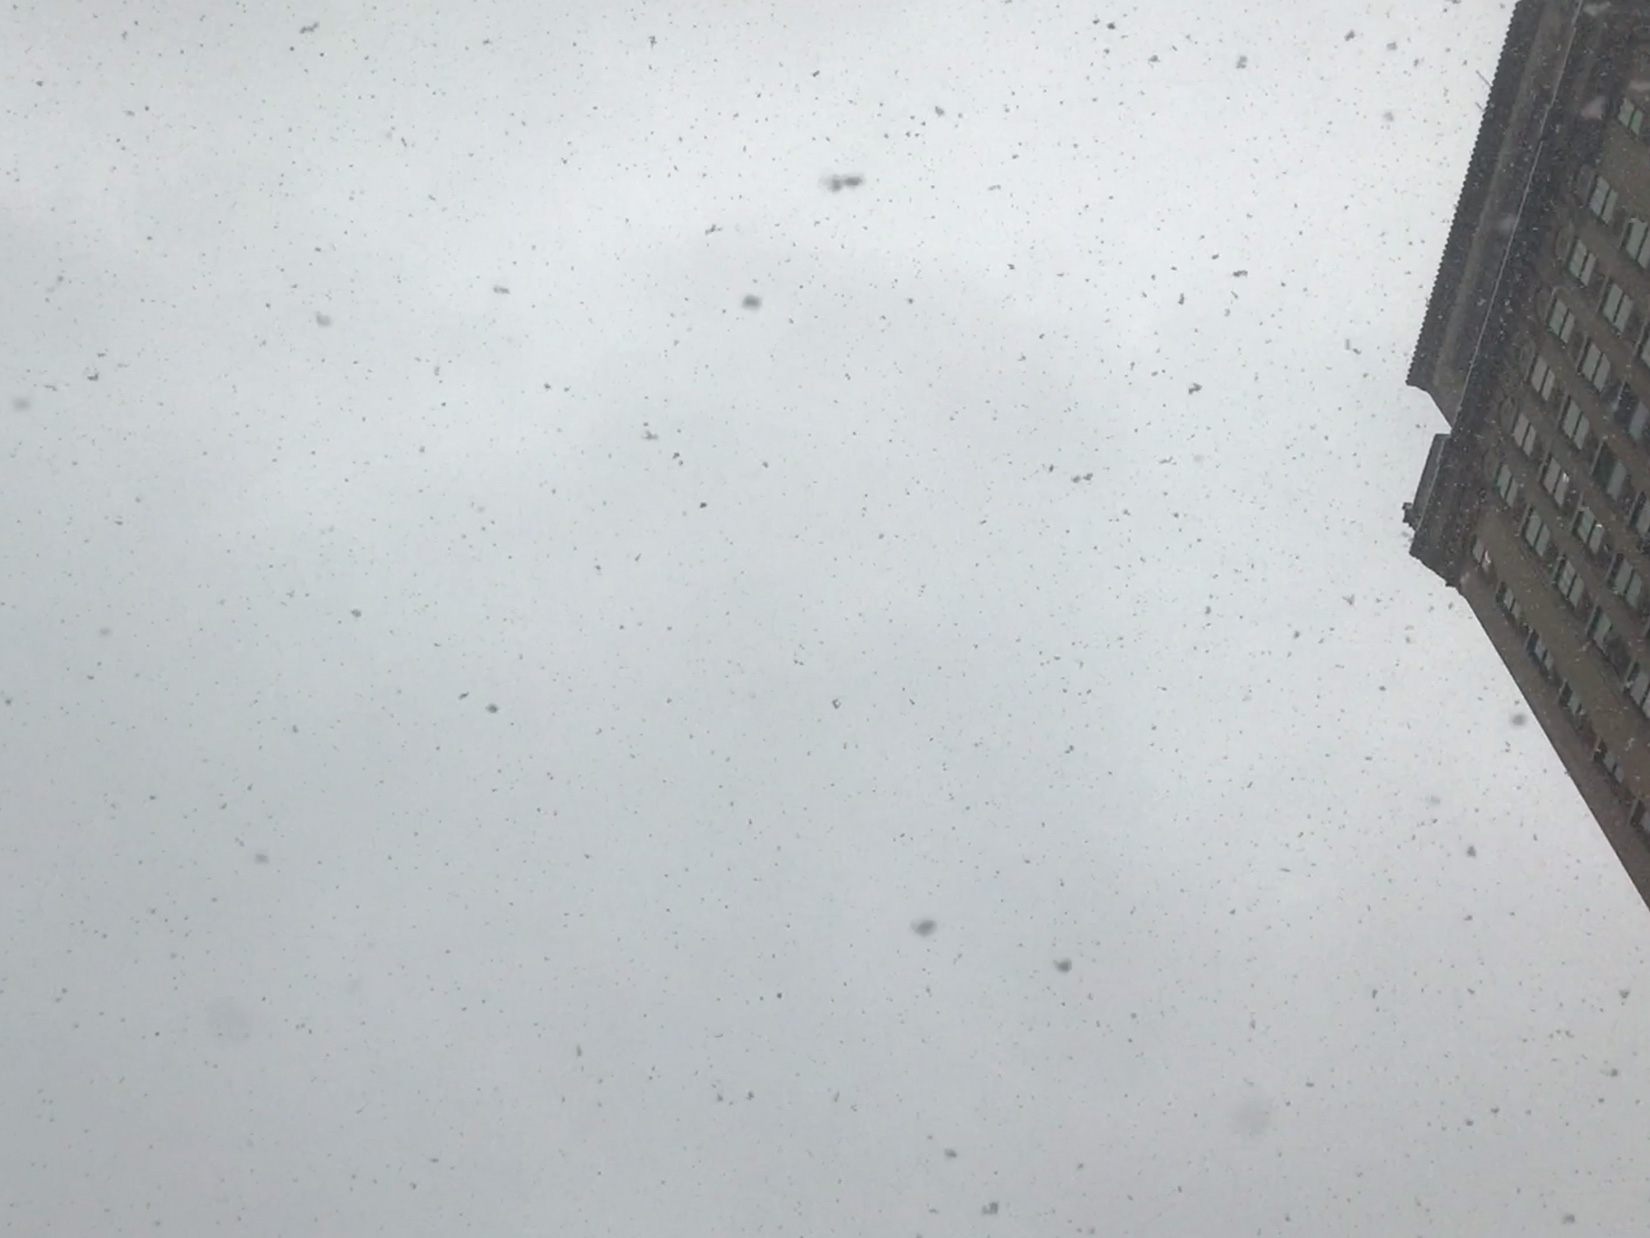 Snow Falling from the Sky